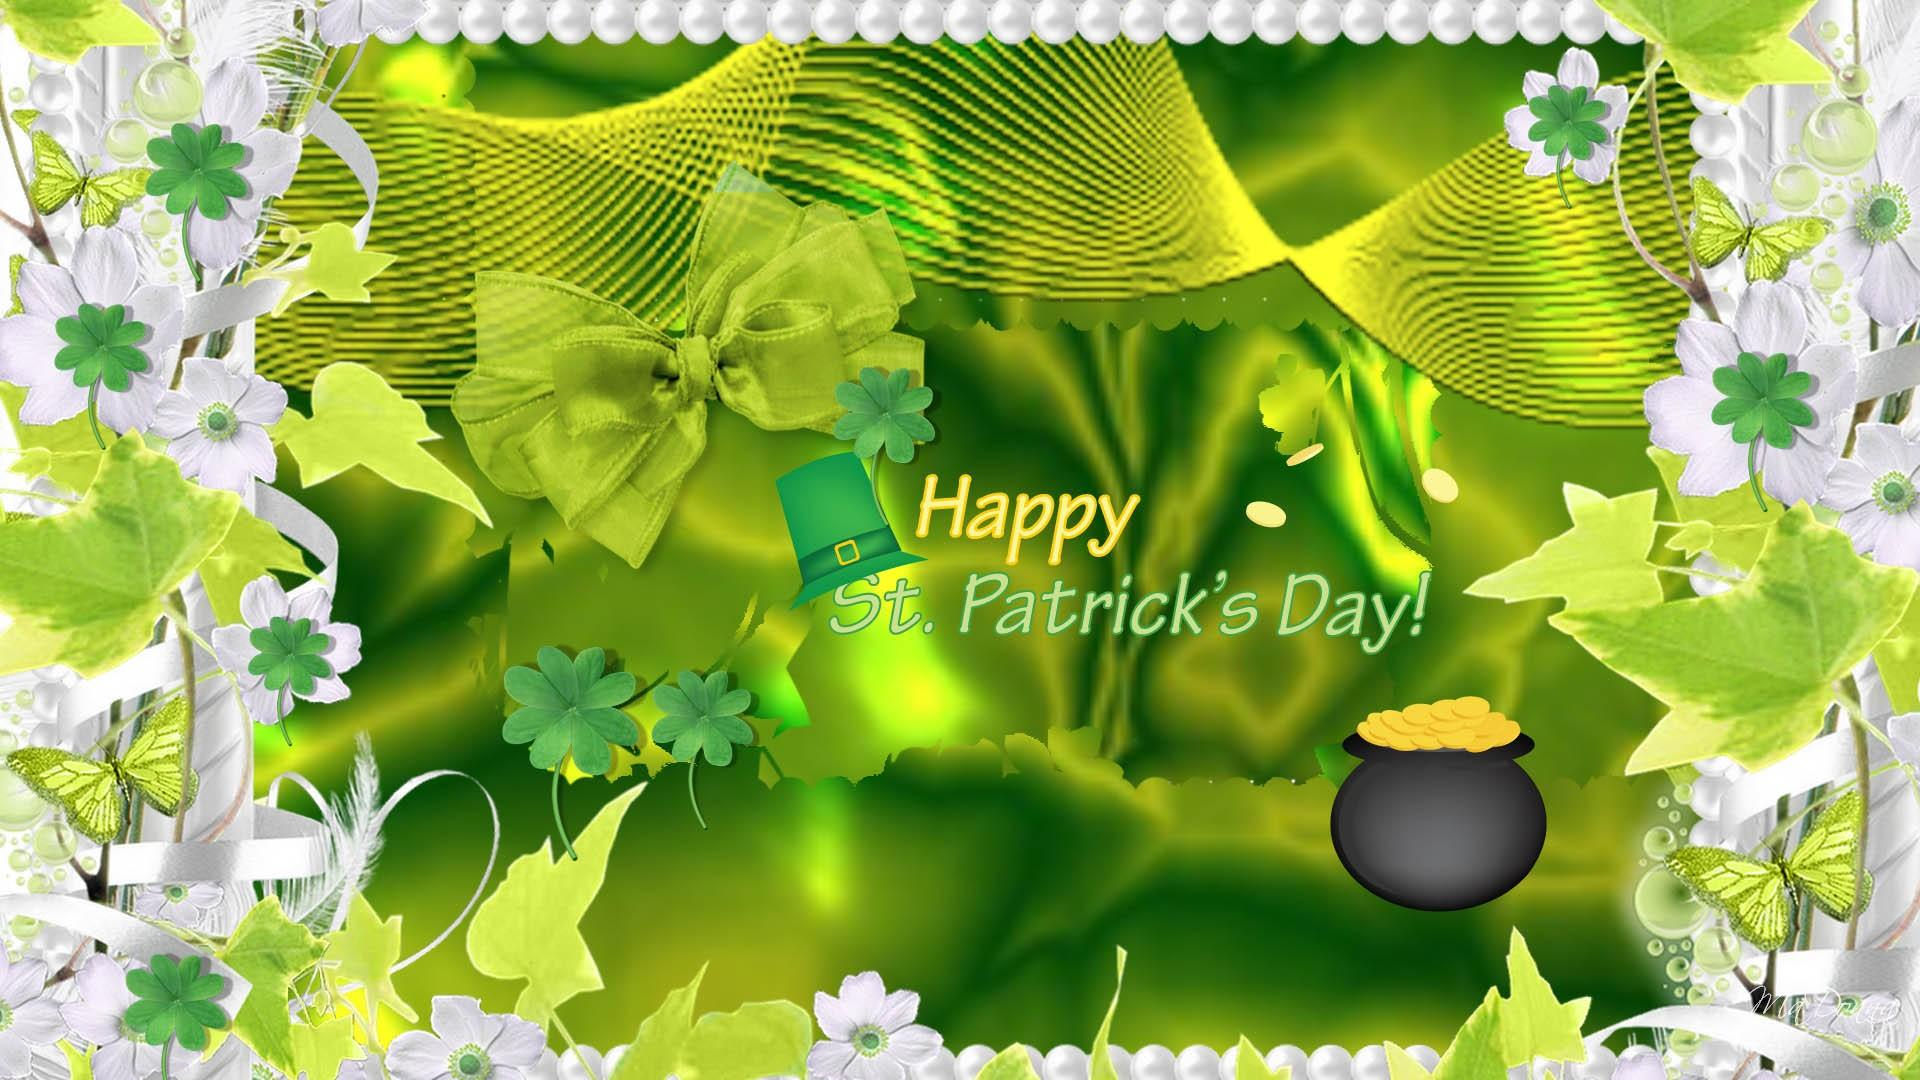 St. Patrick's Day HD Wallpaper | Background Image | 1920x1080